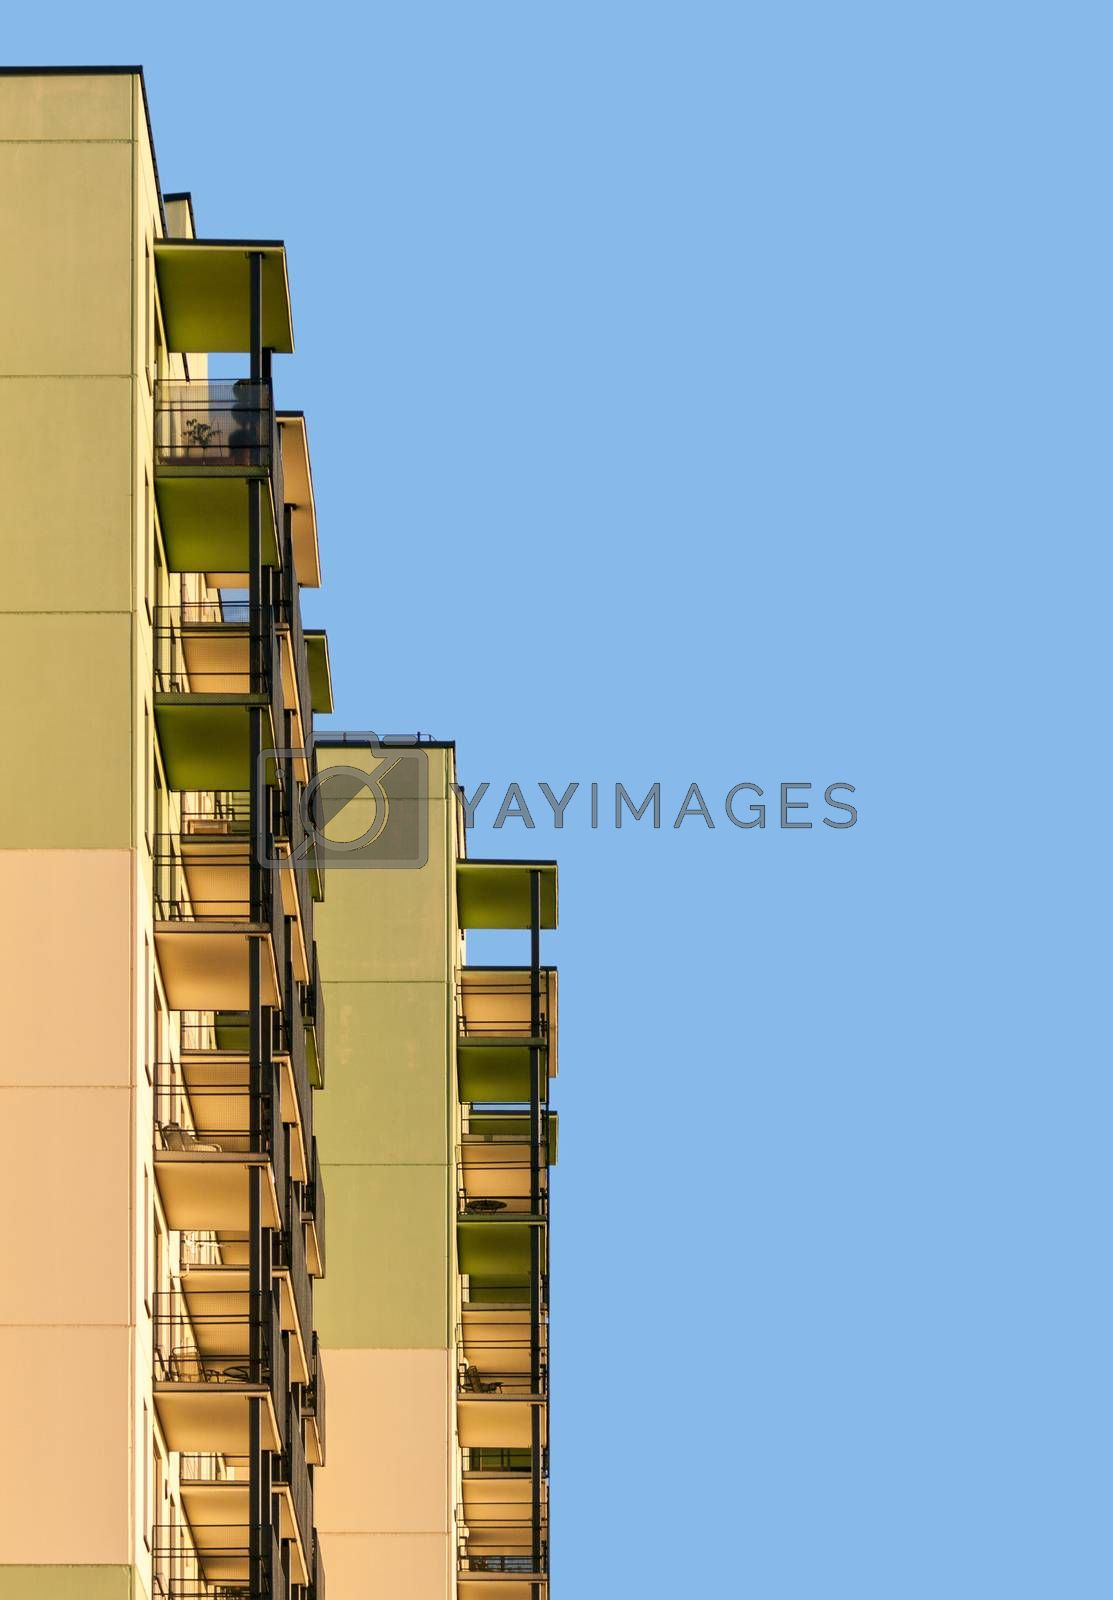 Abstract picture of modern apartment building with balconies against blue sky